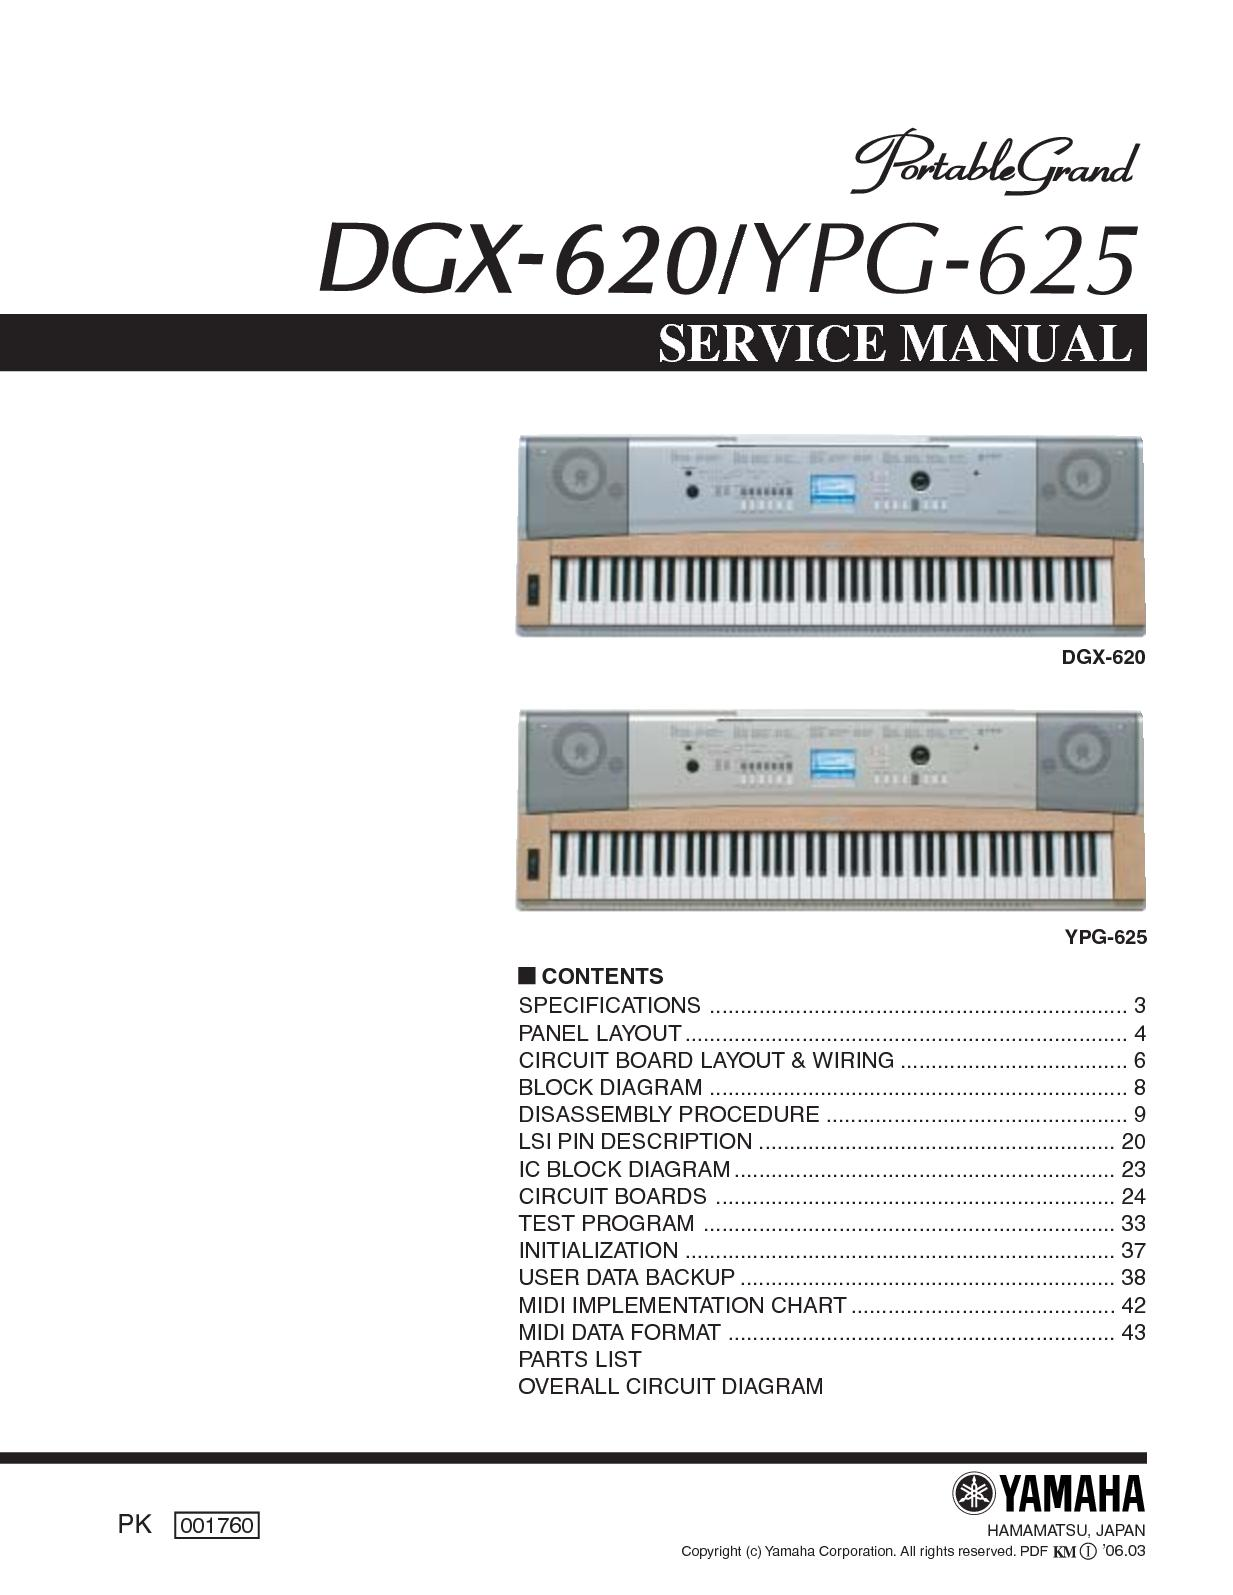 Calamo Yamaha Dgx 620 Ypg 625 Service Manual Fig2 It Has Been Attached An Image Of The Motherboard Block Diagram